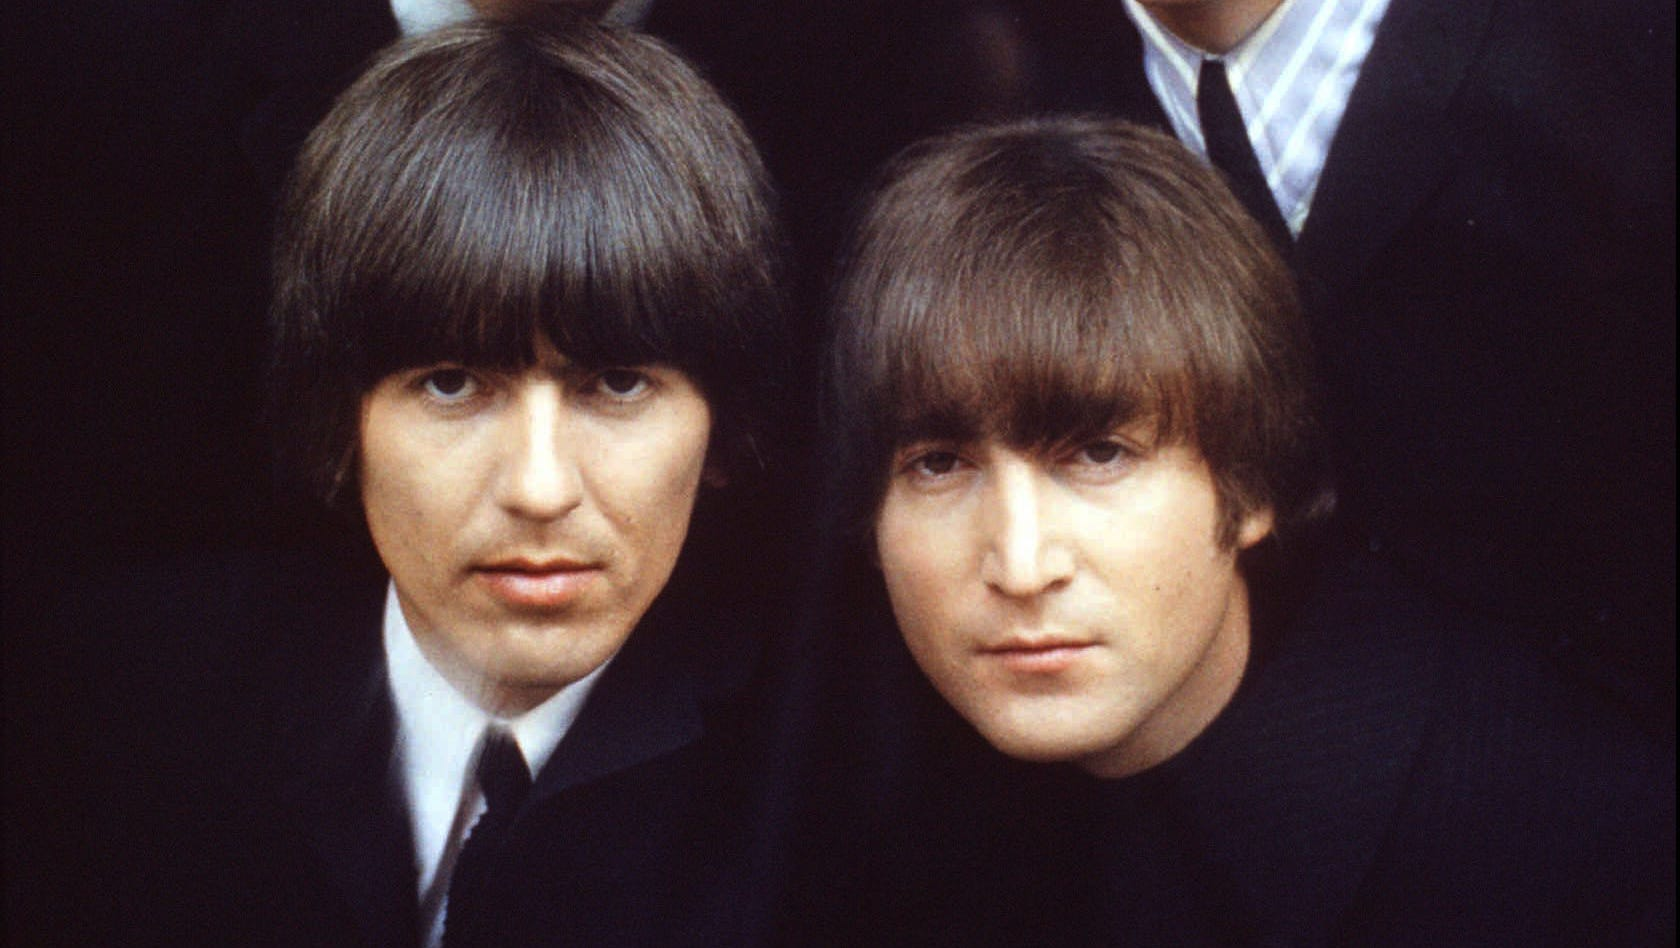 134.5 million   Albums sold. His U.S. sales are second only to The Beatles, who have sold 177 million.